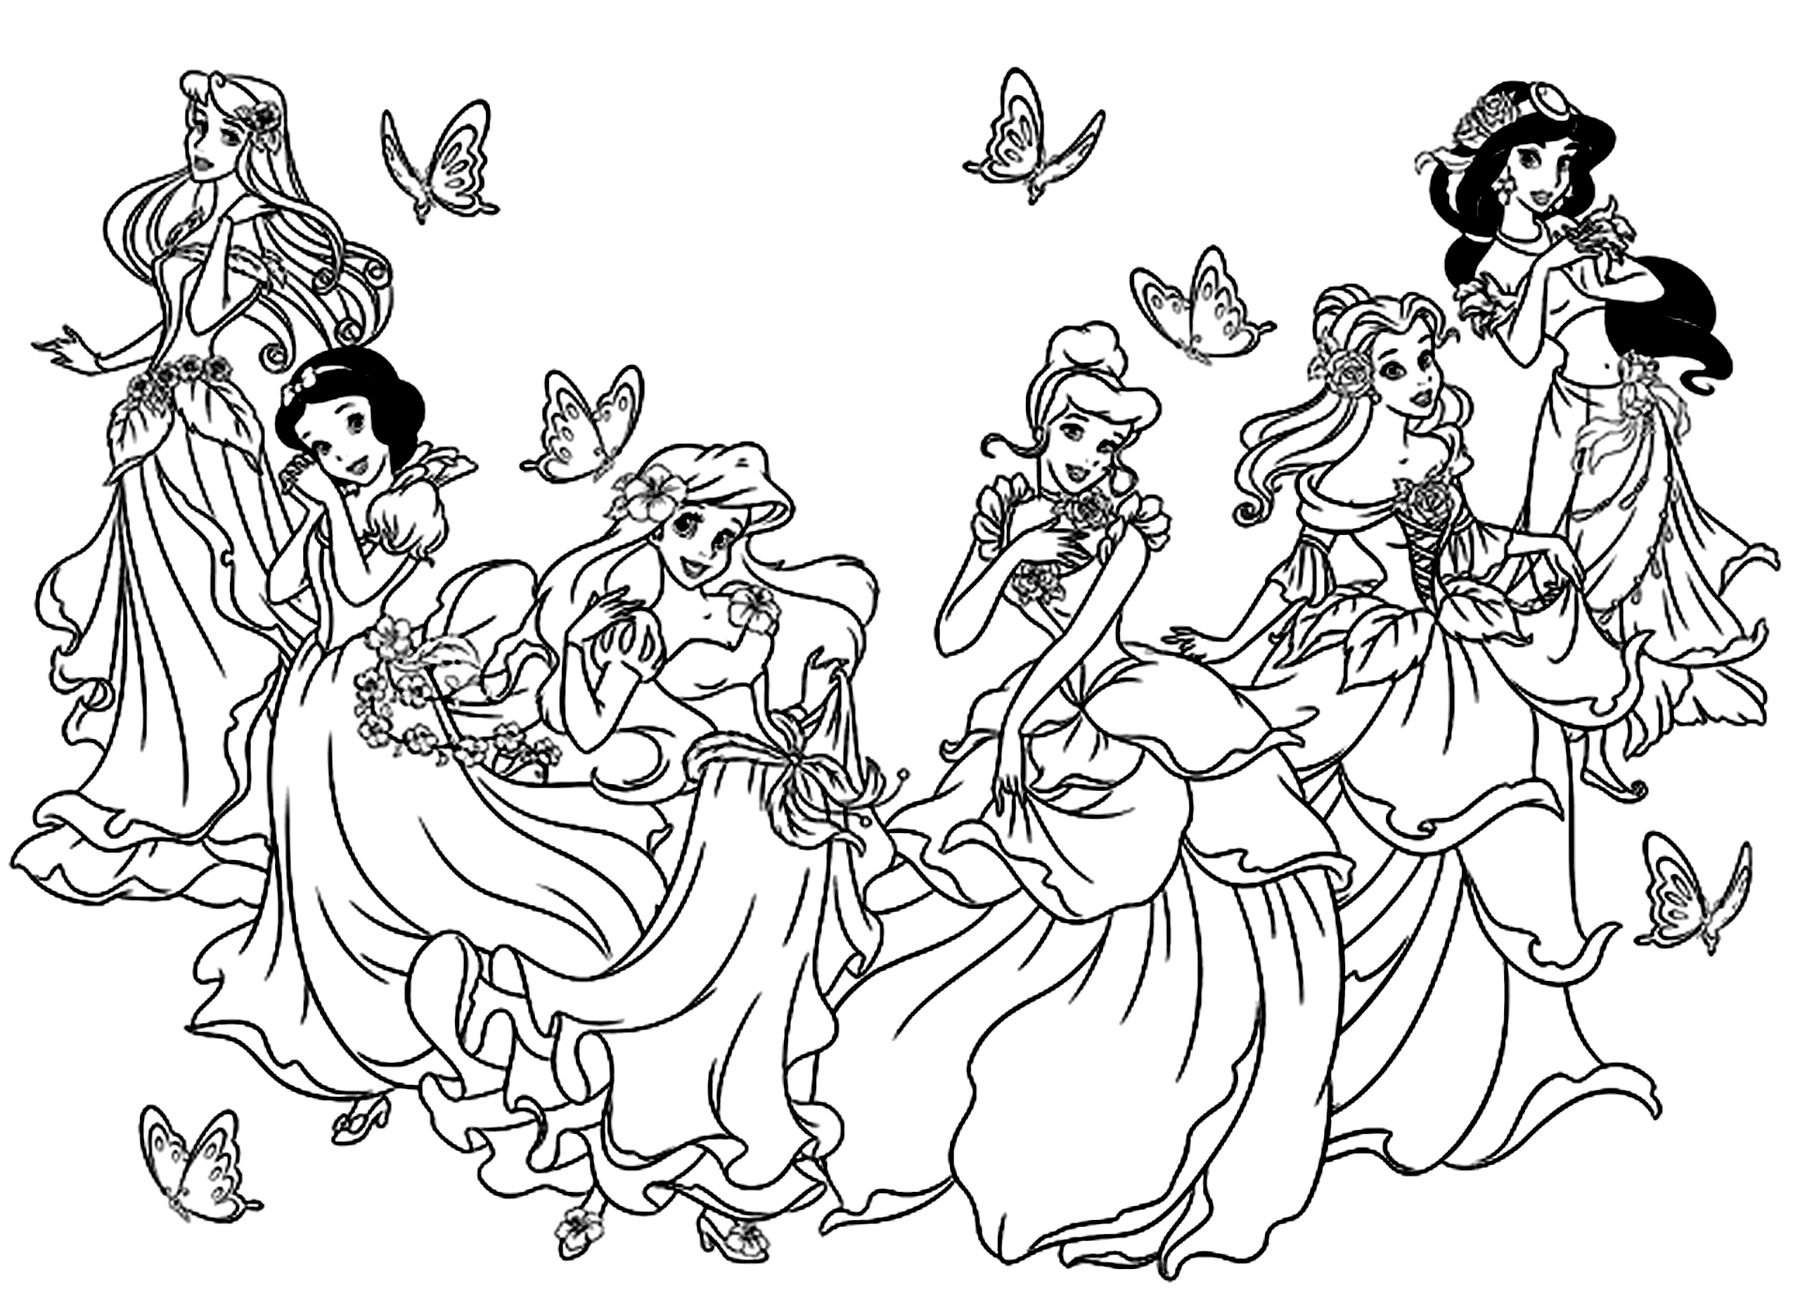 To Print This Free Coloring Page «coloring All Princesses Disney